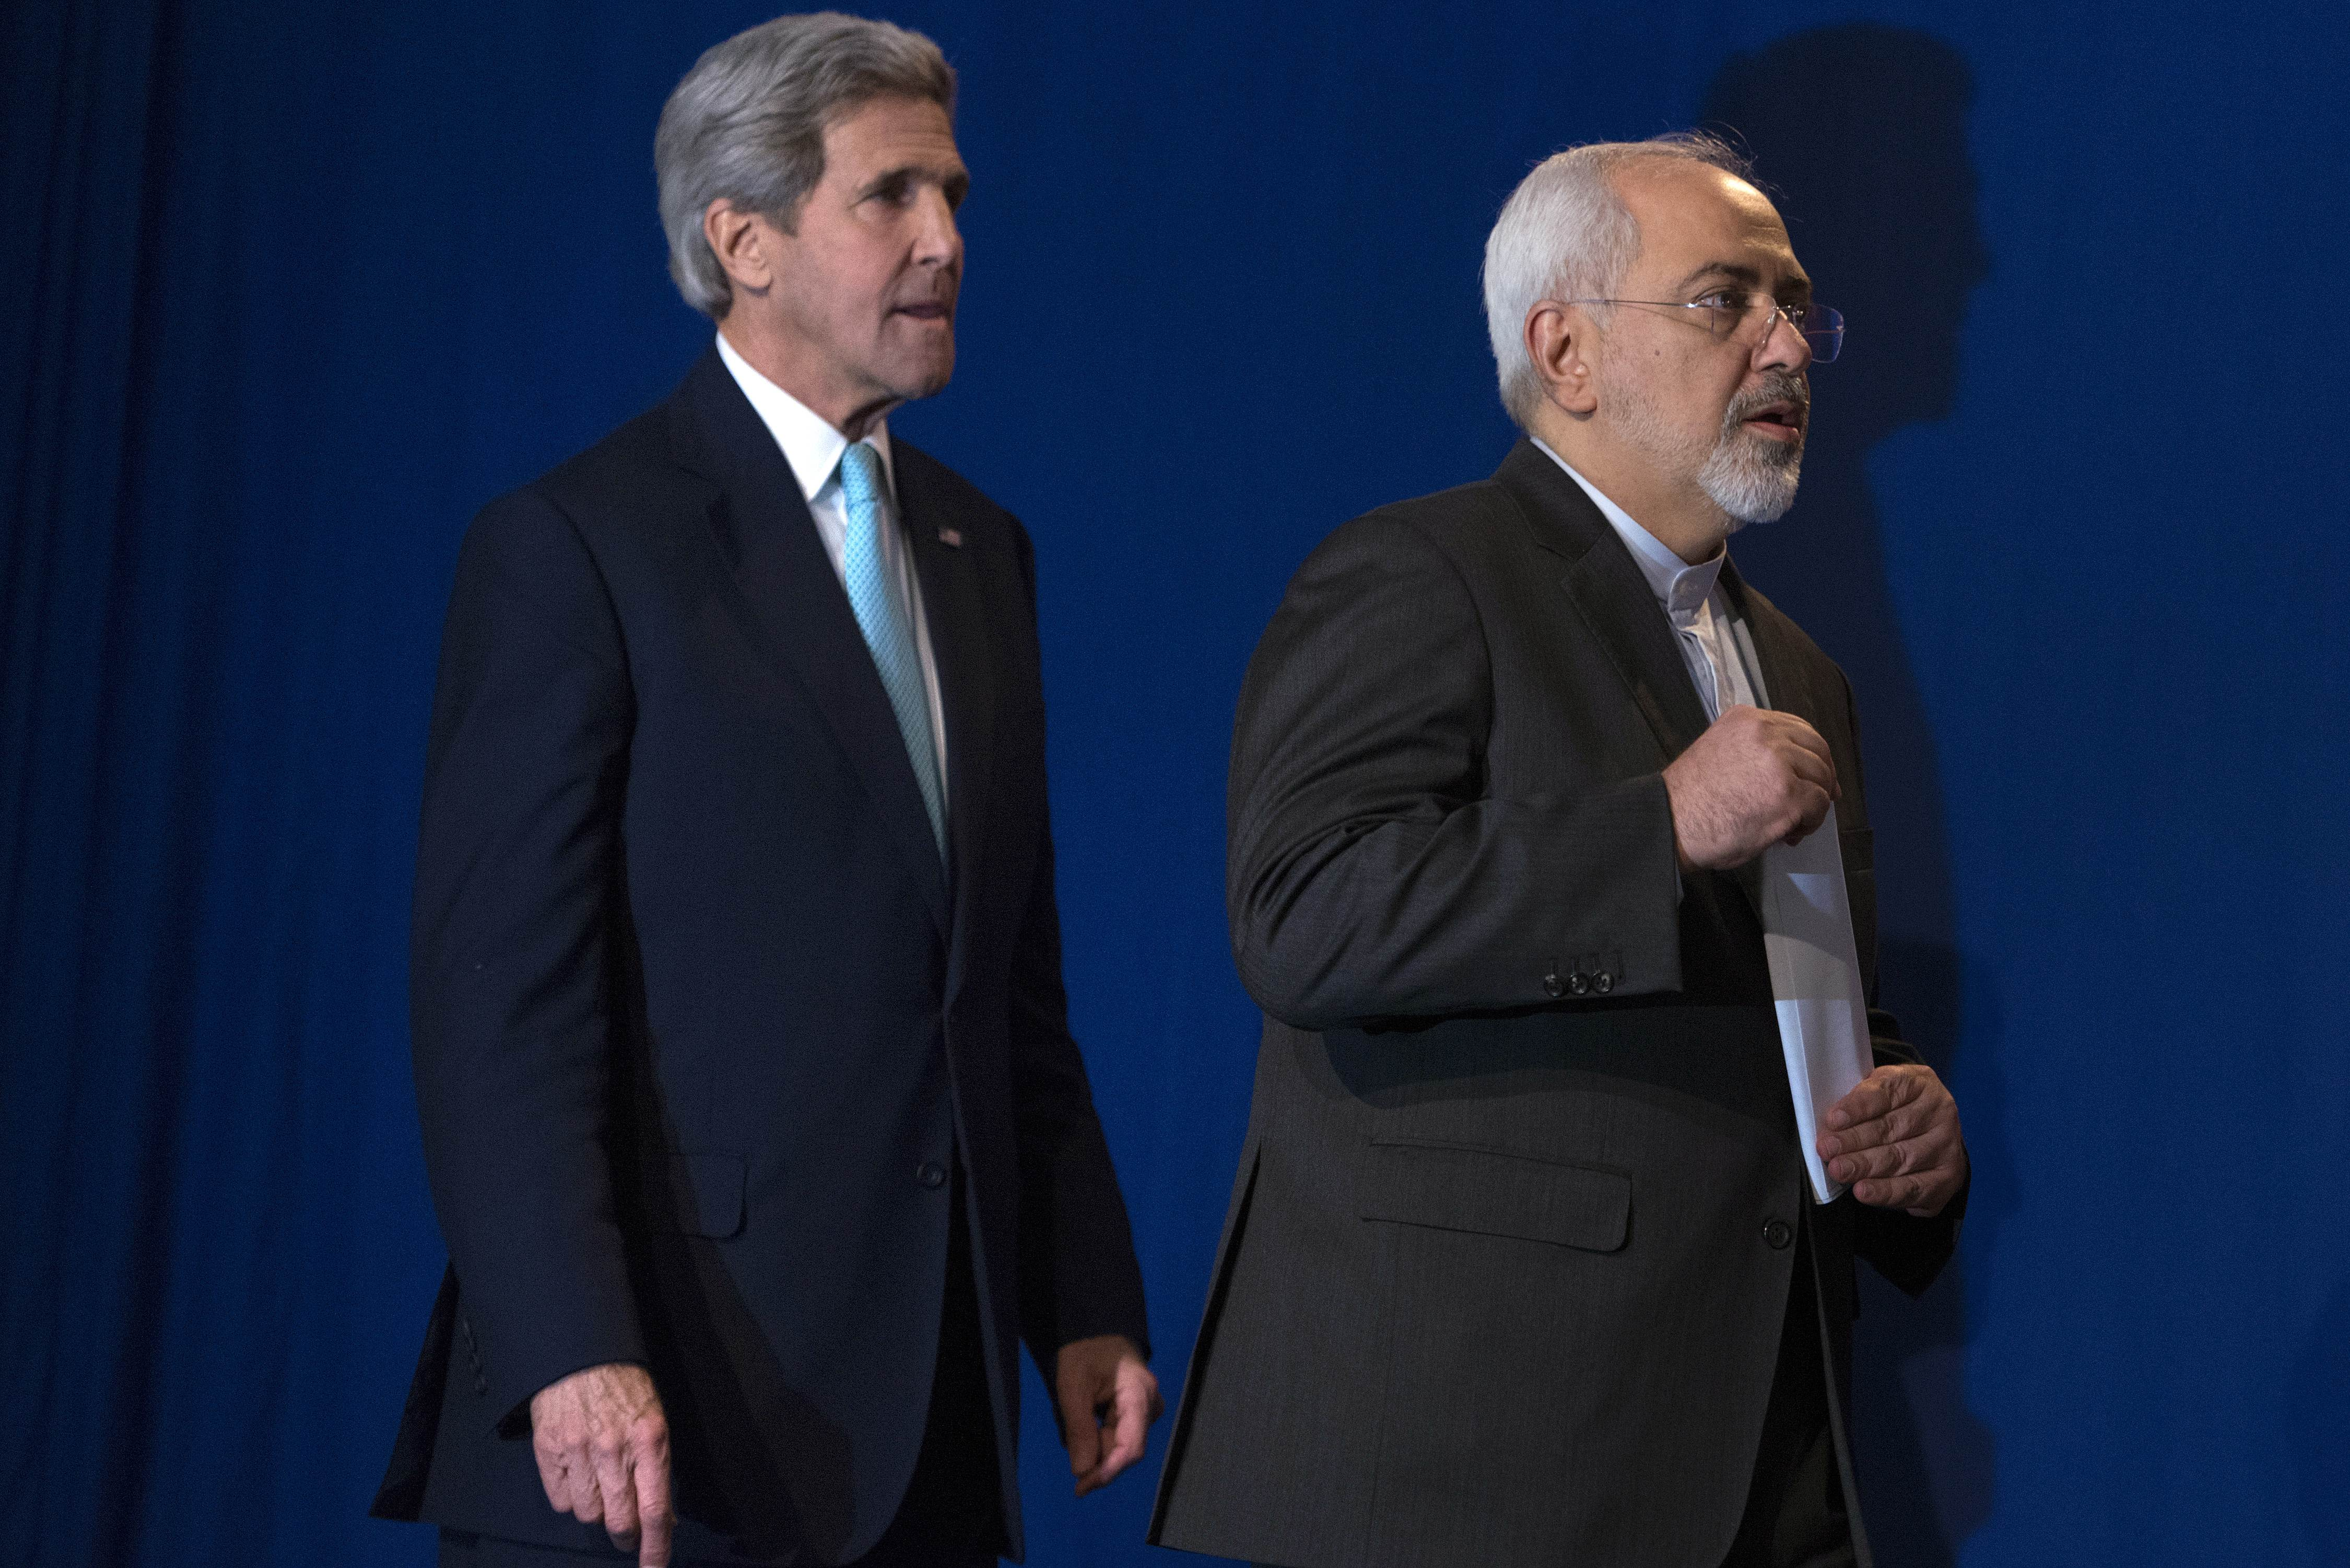 US Secretary of State John Kerry, left, and Iranian Foreign Minister Javad Zarif arrive to deliver a statement, at the Swiss Federal Institute of Technology, or Ecole Polytechnique Federale De Lausanne,  in Lausanne, Switzerland, Thursday, April 2, 2